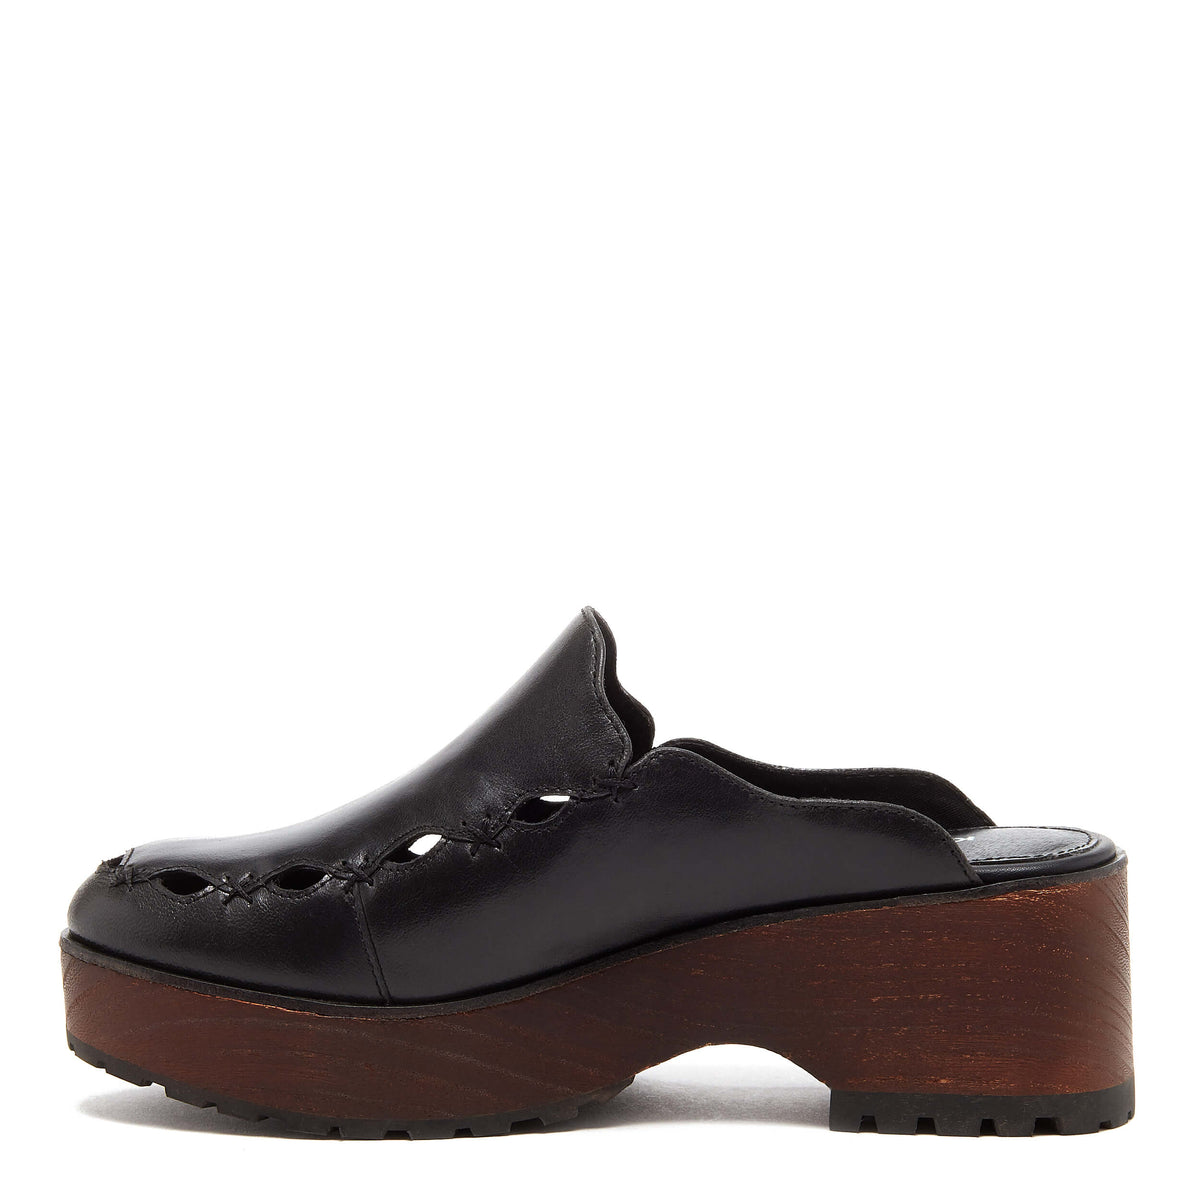 Kelsi Dagger BK® Wells Black Wood Clog